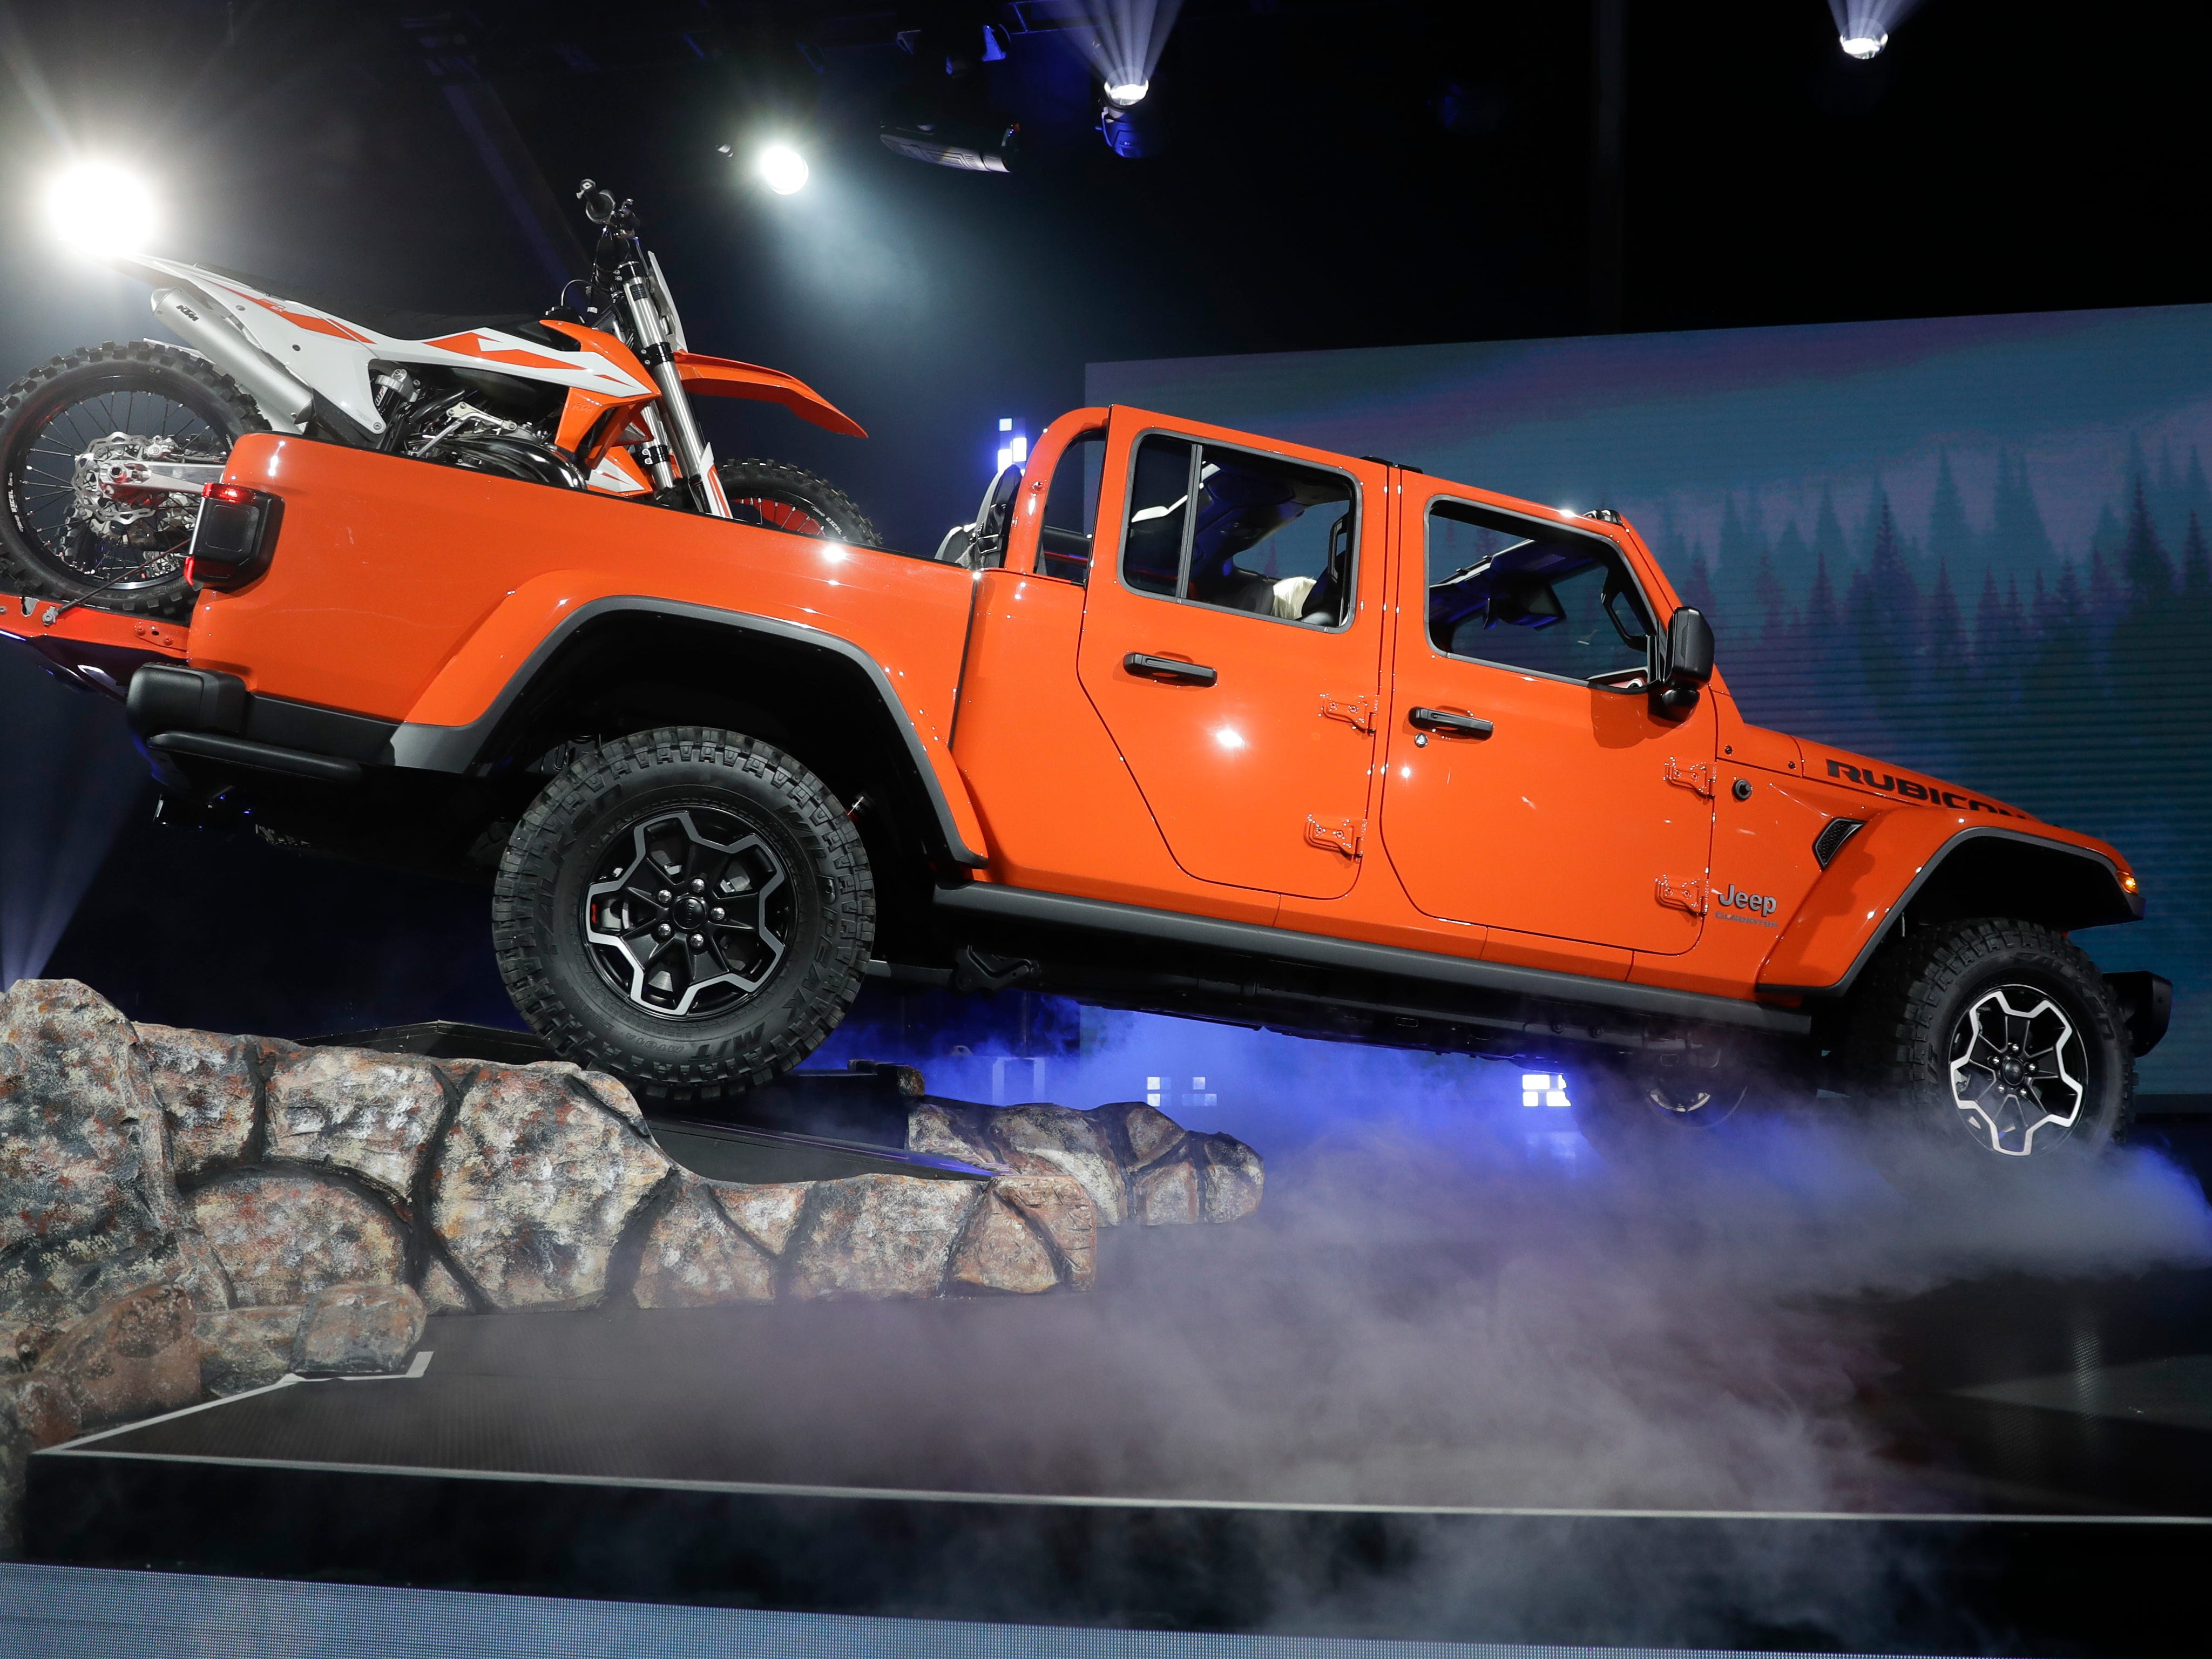 A 2020 Jeep Gladiator Rubicon climbs into the stage during the Los Angeles Auto Show on Wednesday.